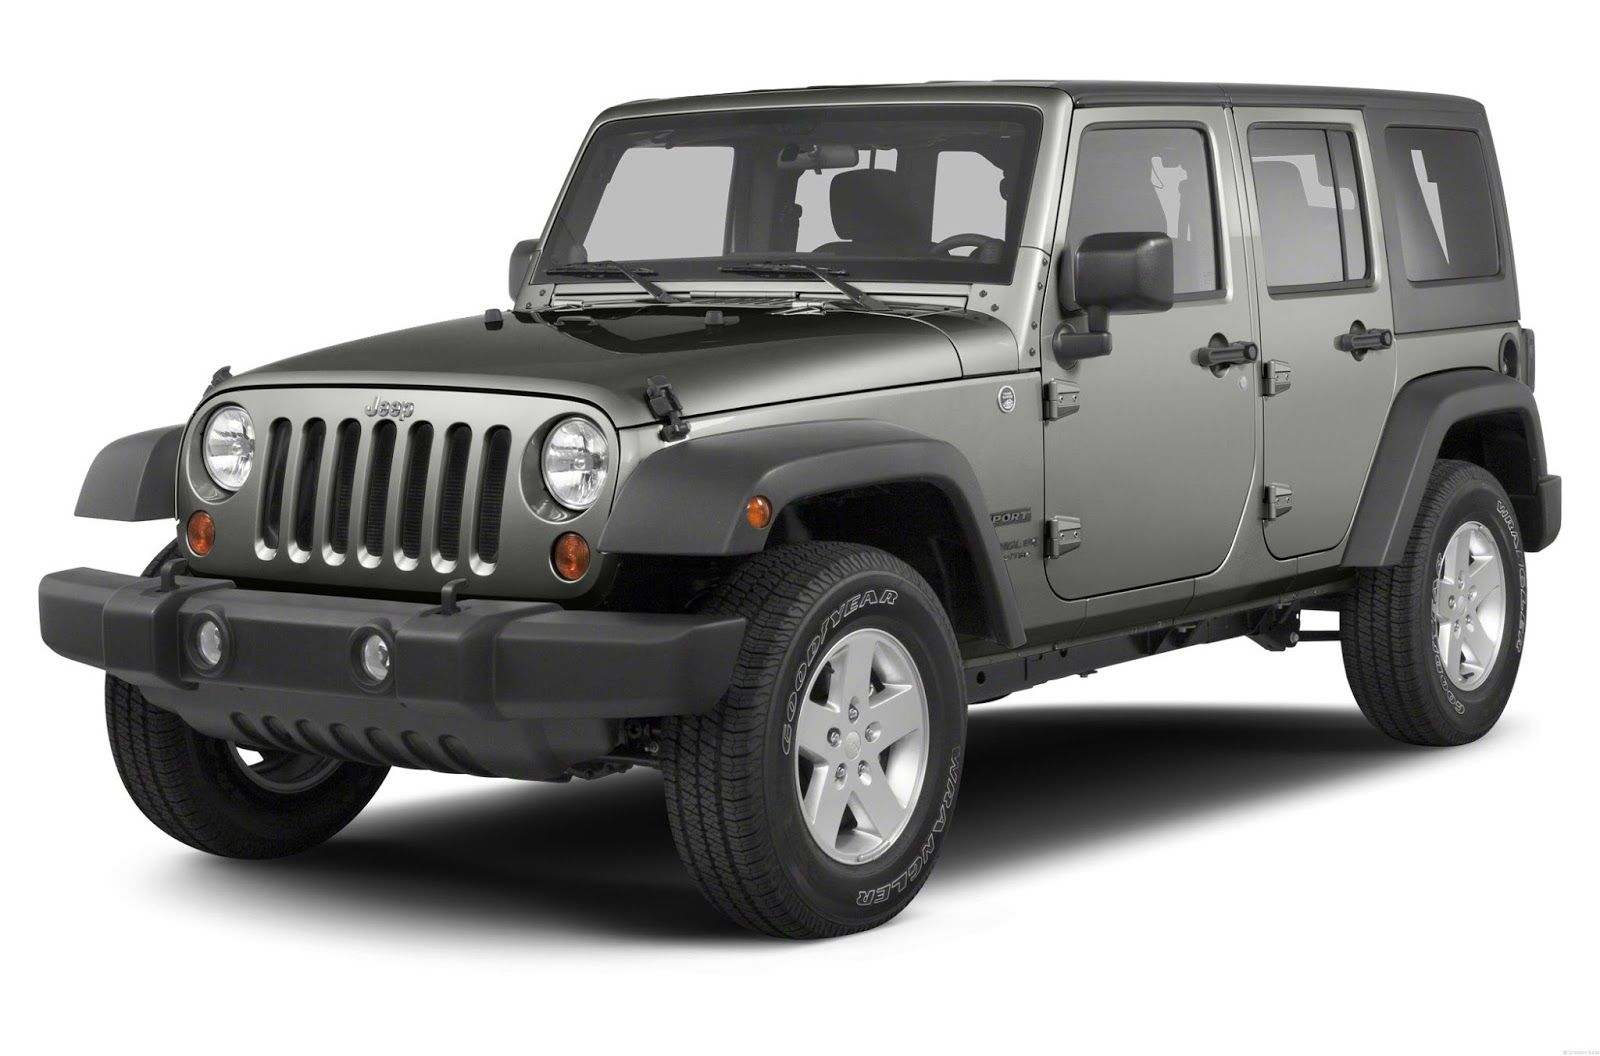 Jeep Wrangler 2013 Owner's Manual dan Uconnect 730 User's